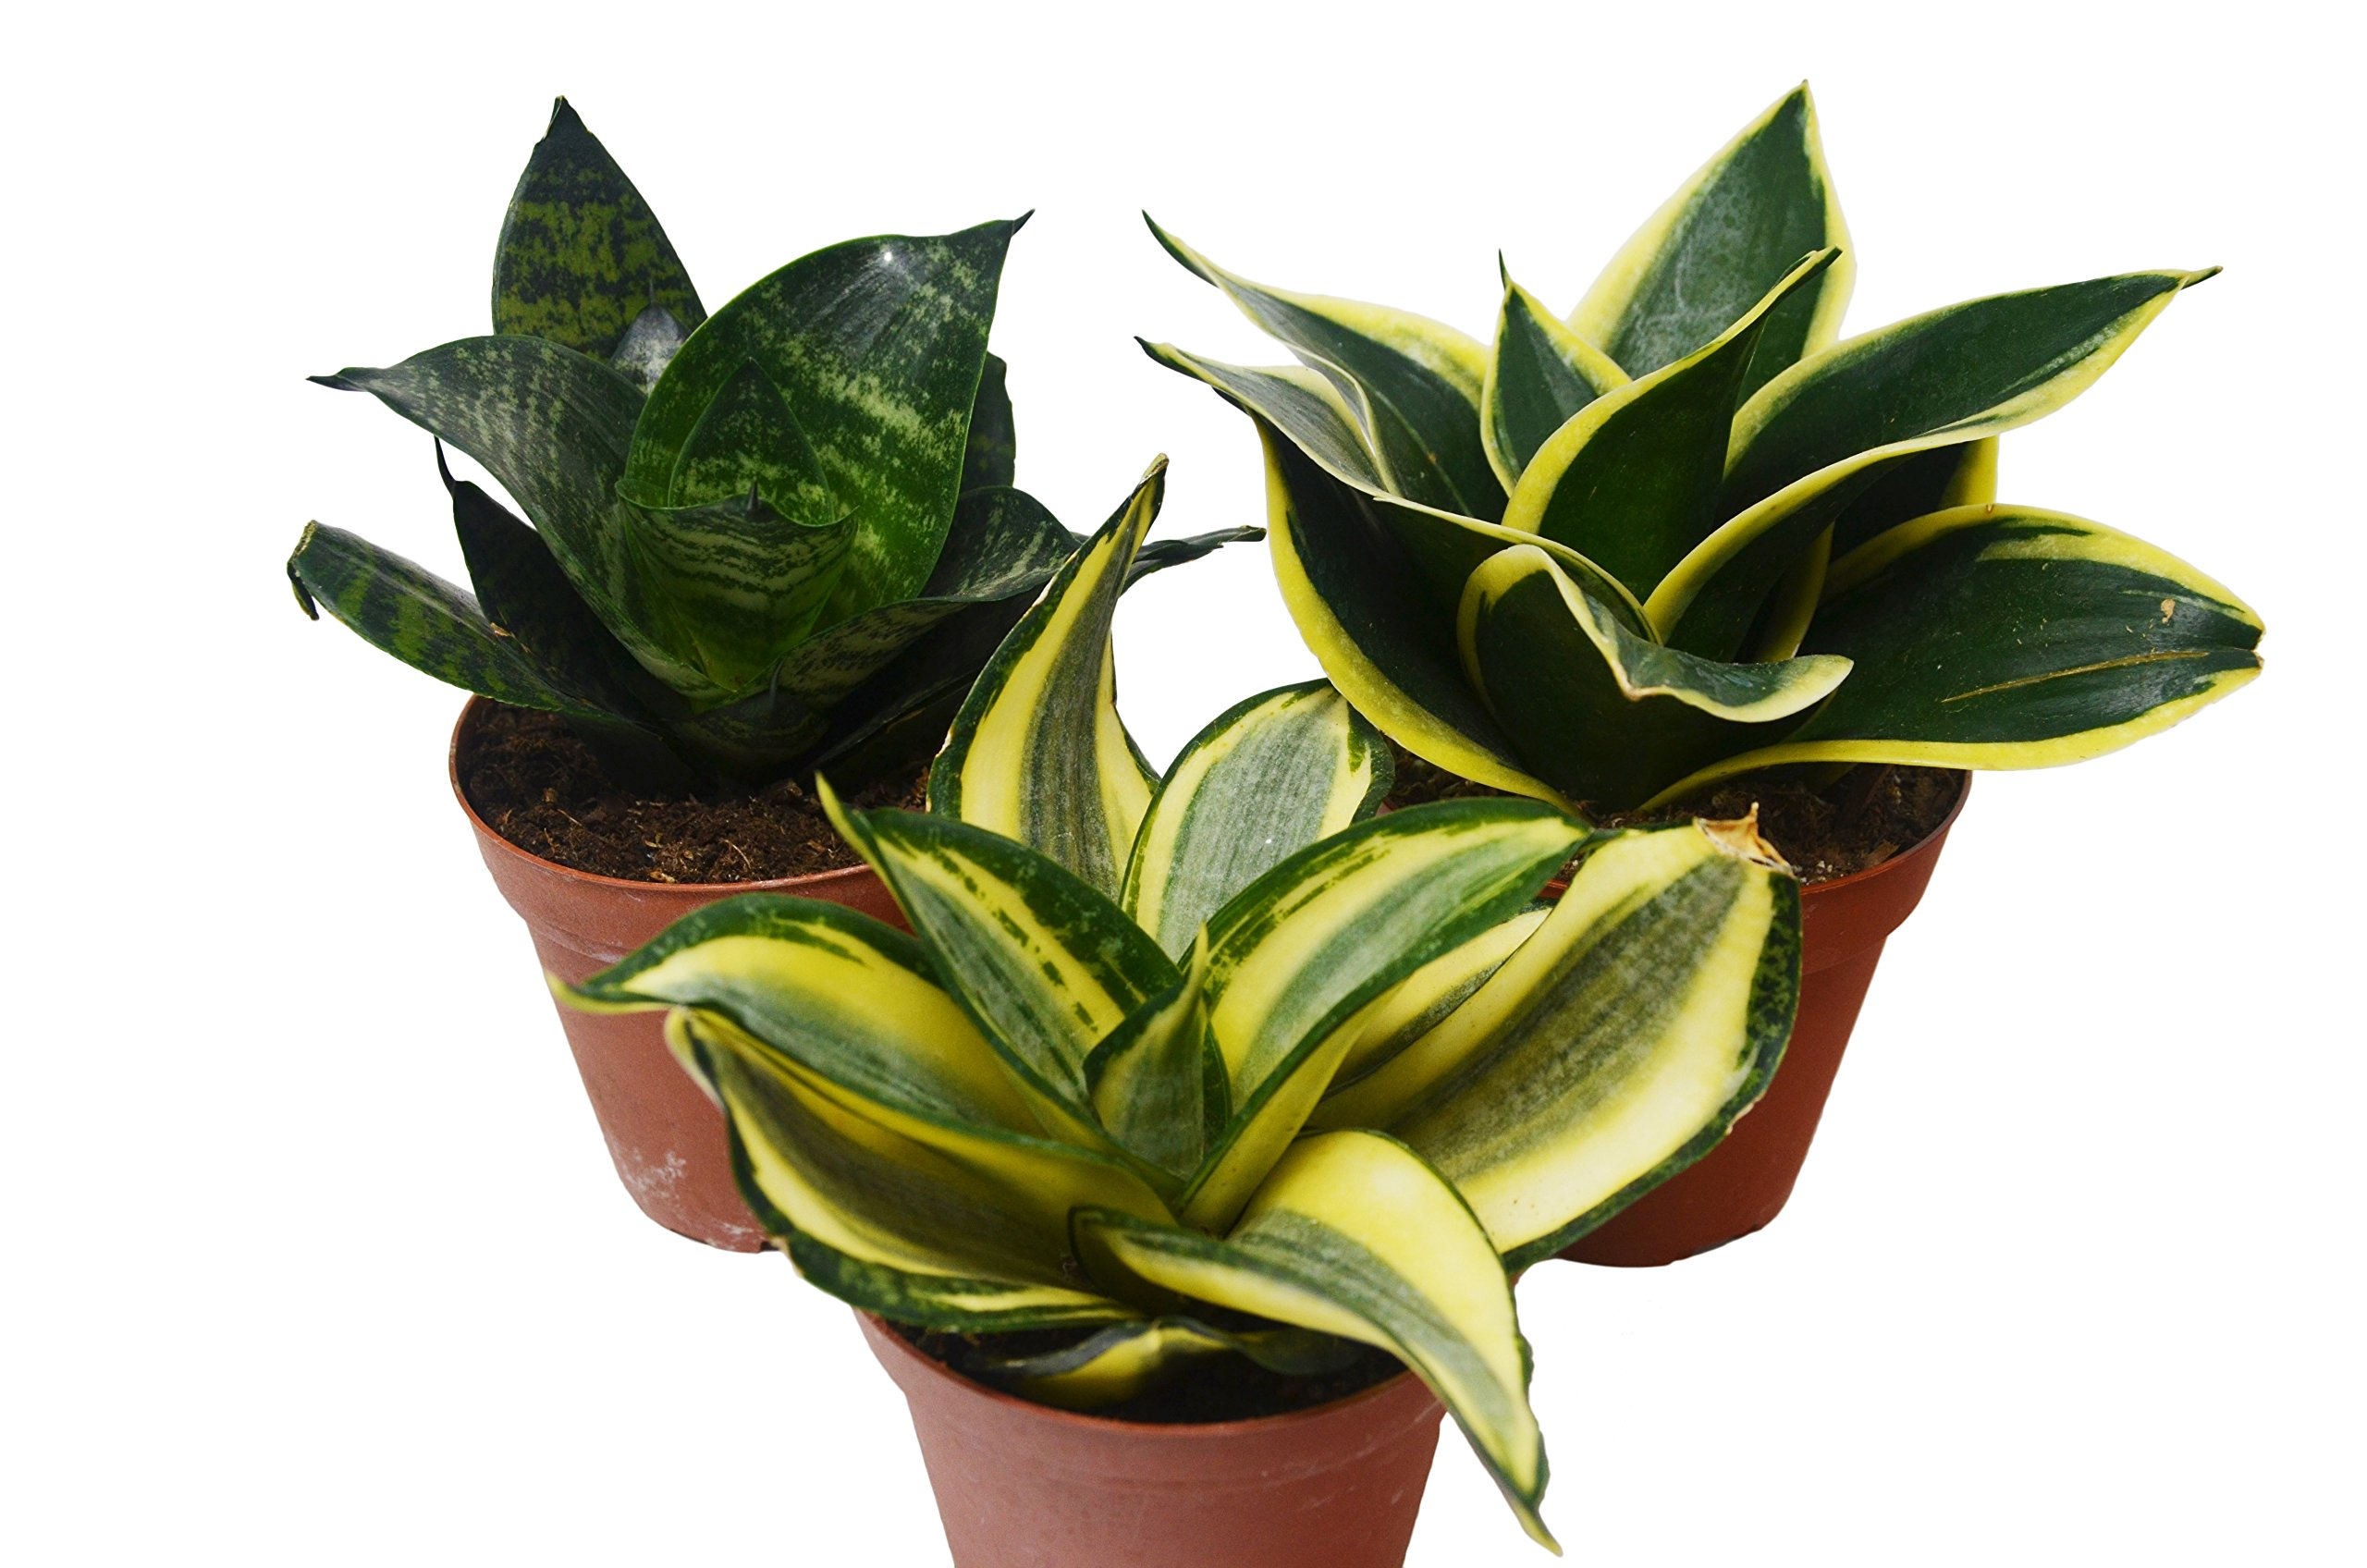 3 Different Snake Plants in 4'' Pots - Sansevieria - Live Plant - FREE Care Guide